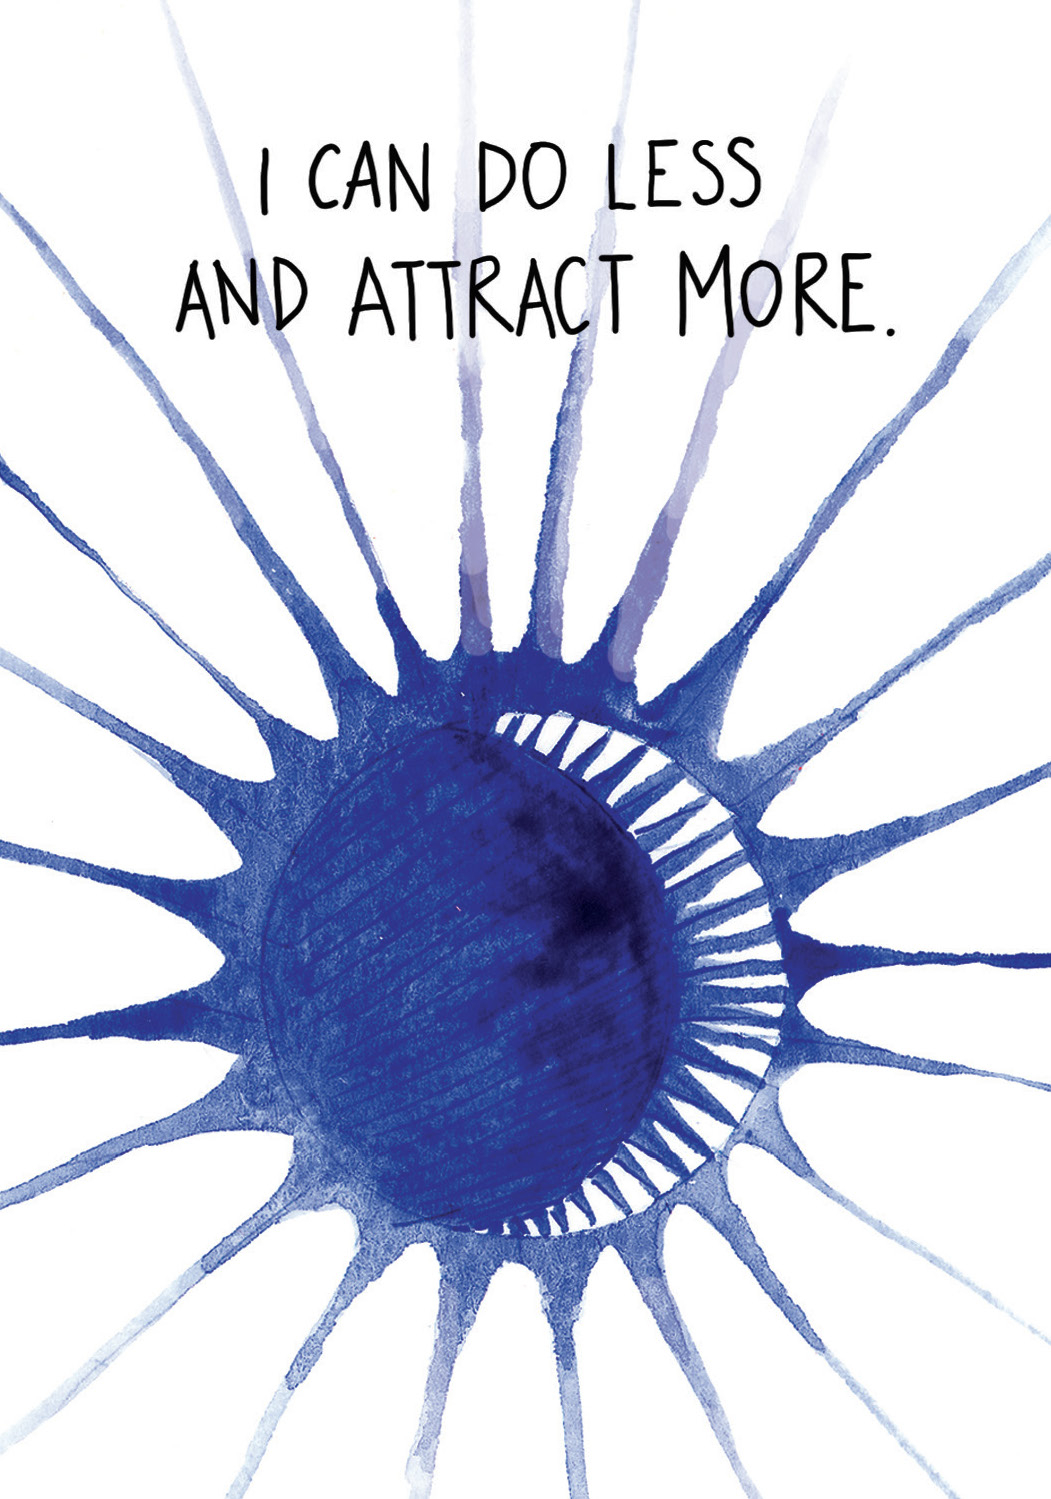 I can do less and attract more | Super Attractor card deck